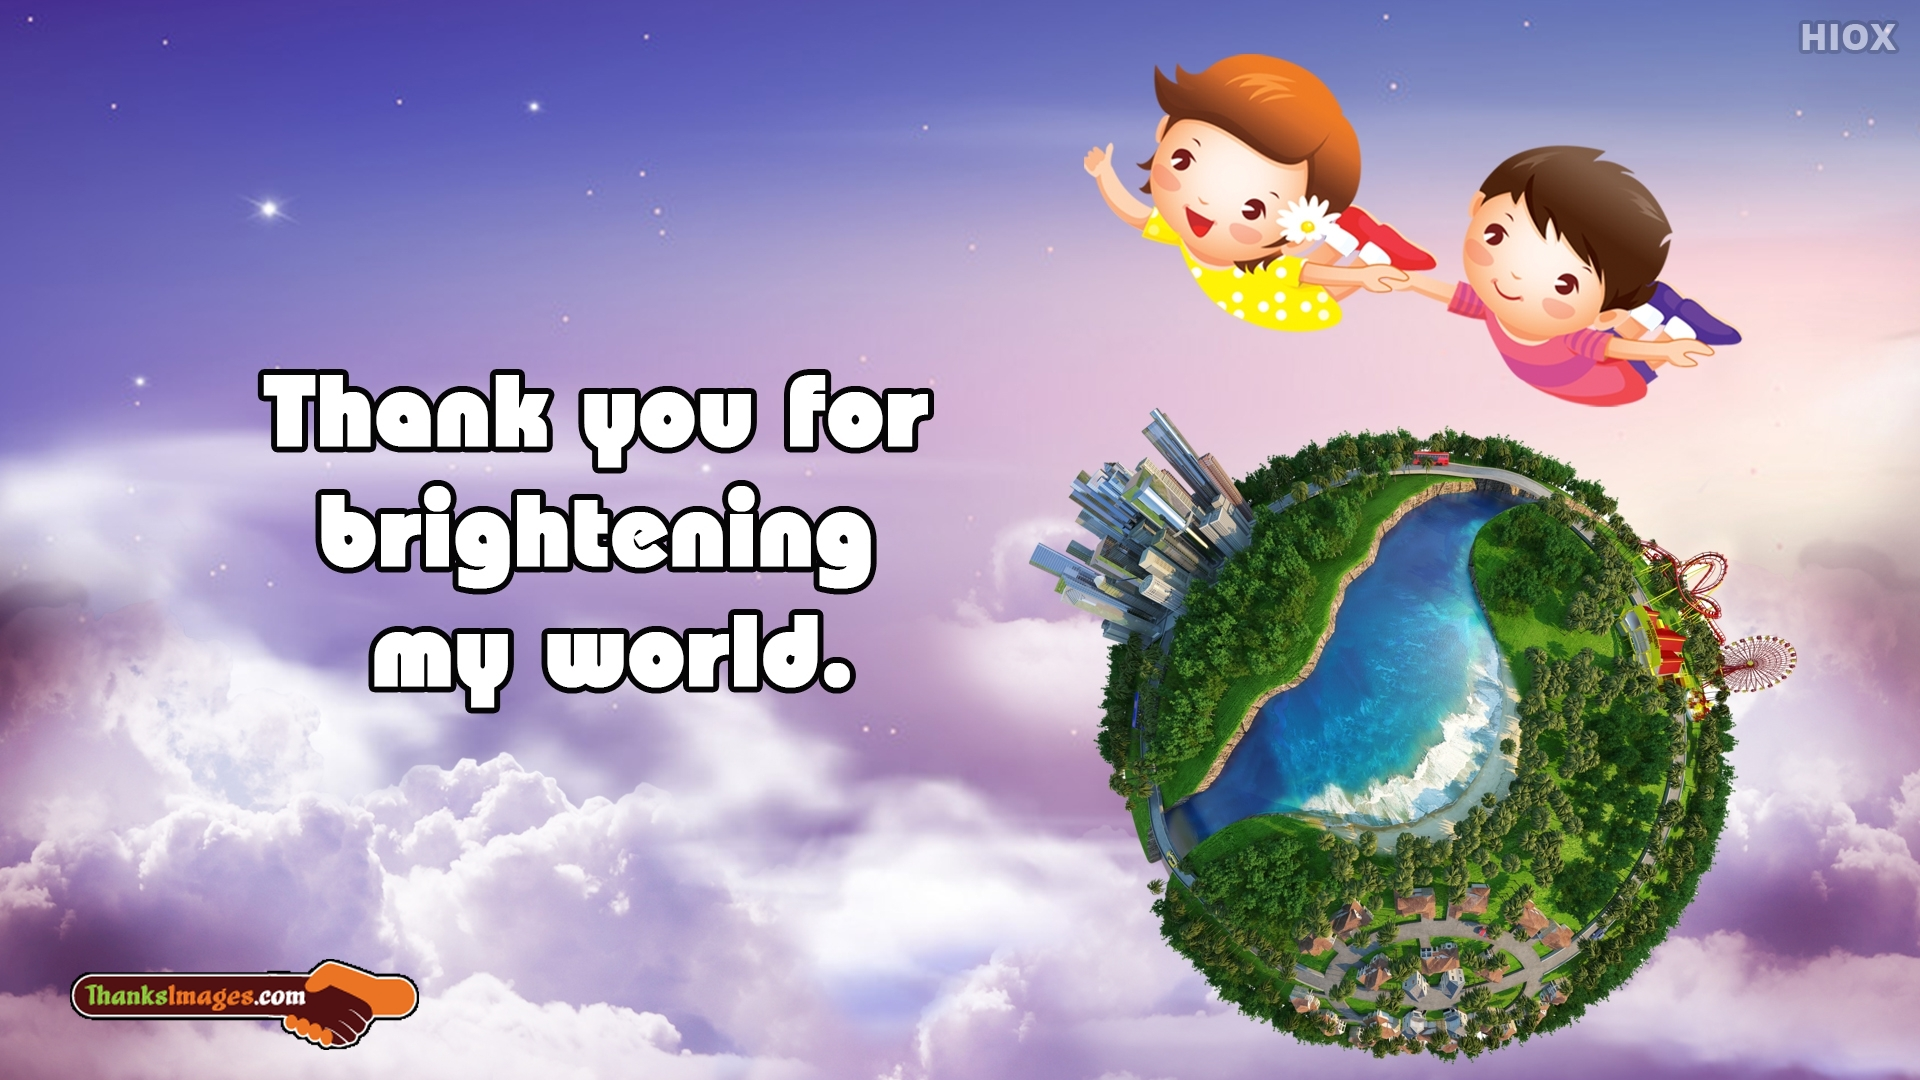 Thank You For Brightening My World.